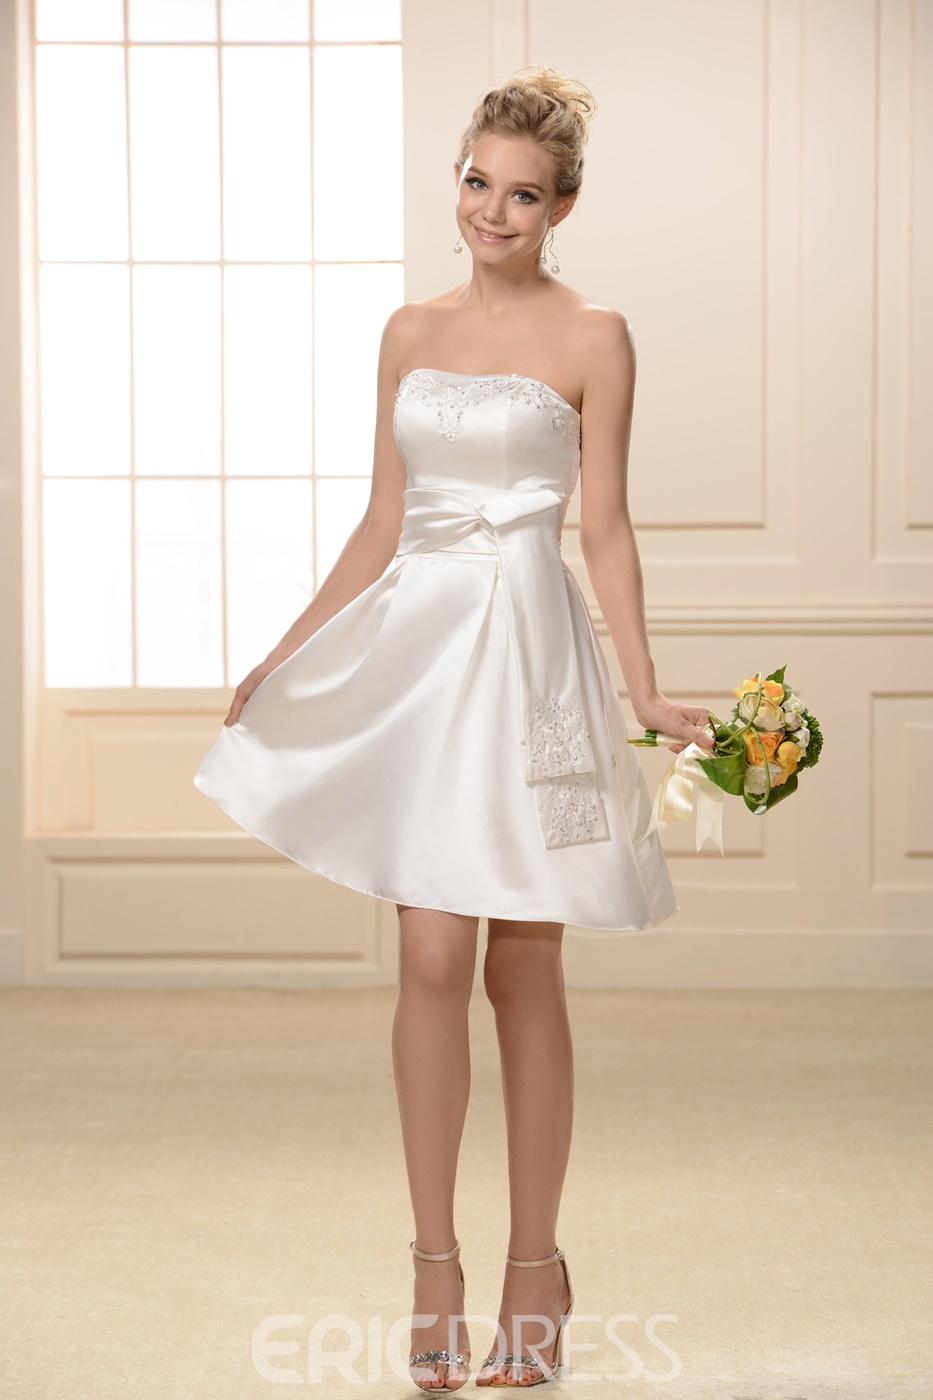 Beaded Sashes/Ribbons A-Line Sweetheart Neckline Knee-Length Bridesmaid Dress